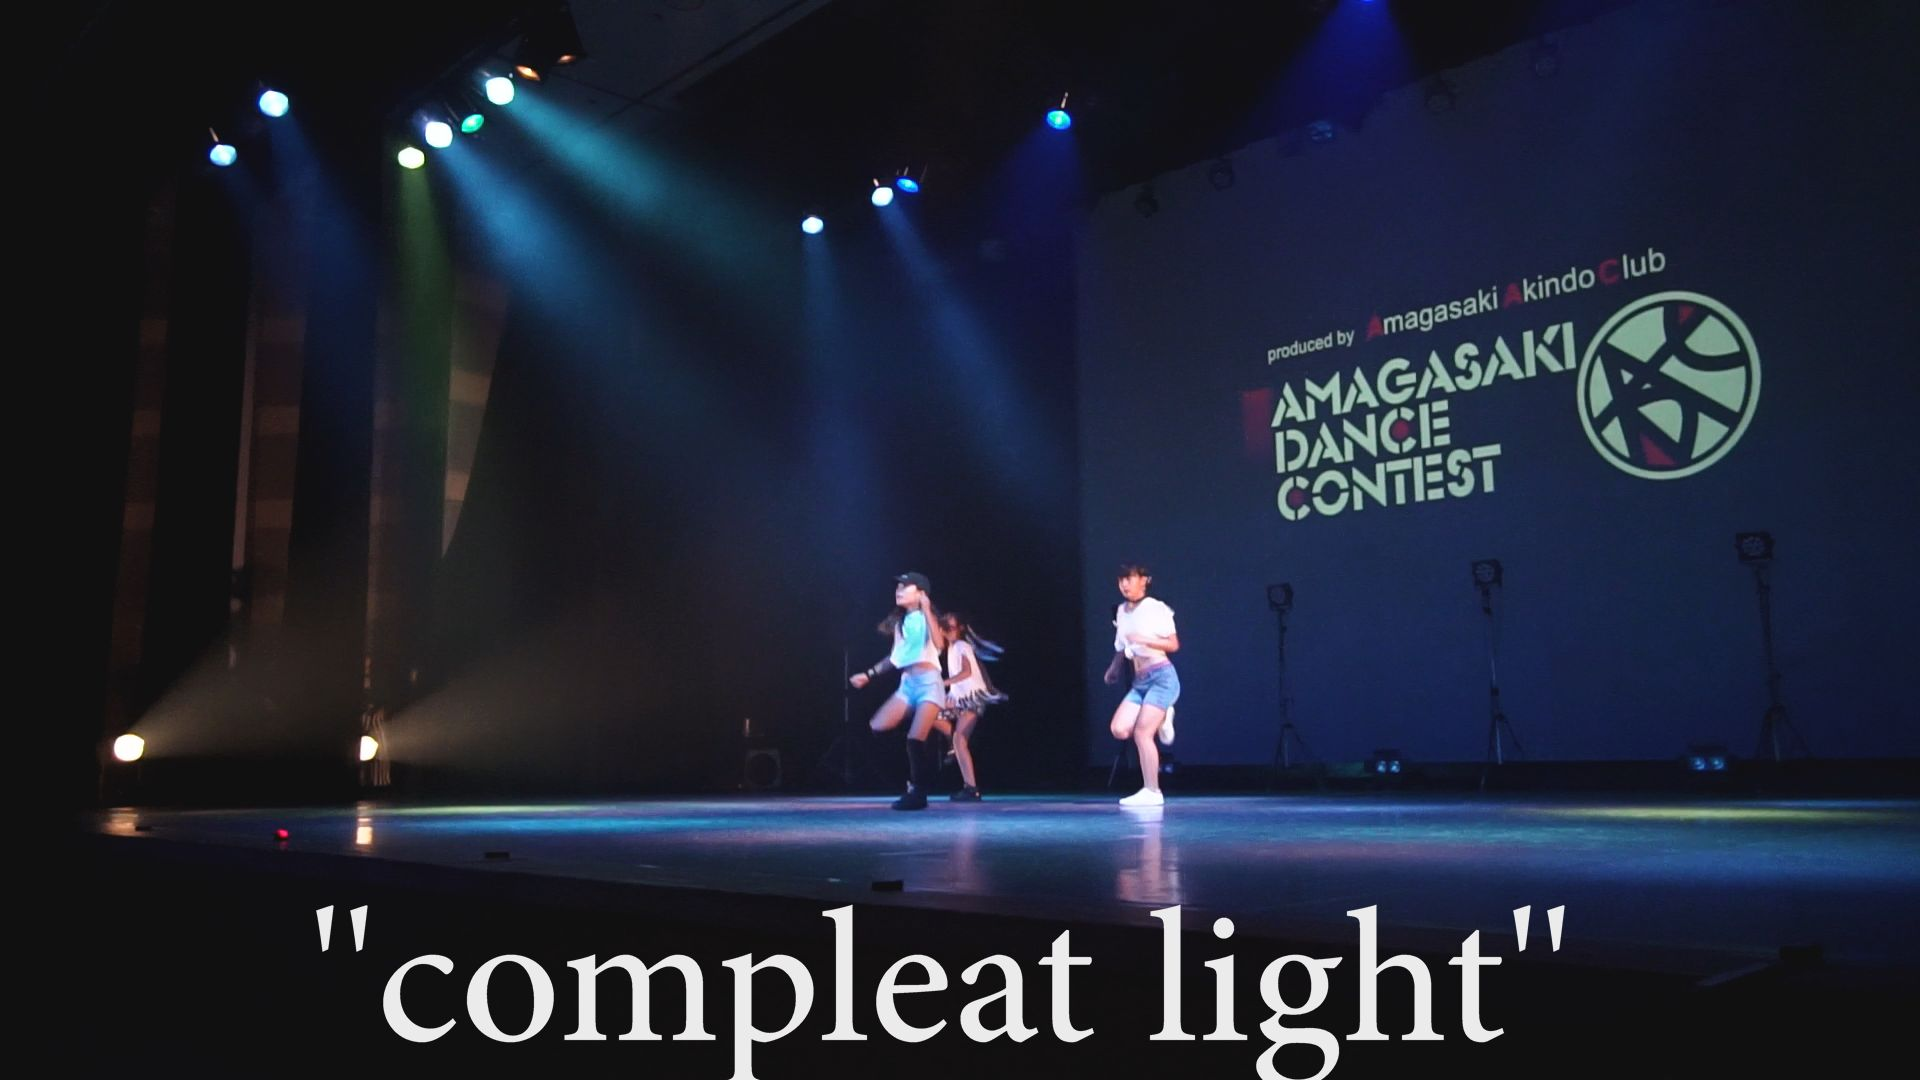 compleat light